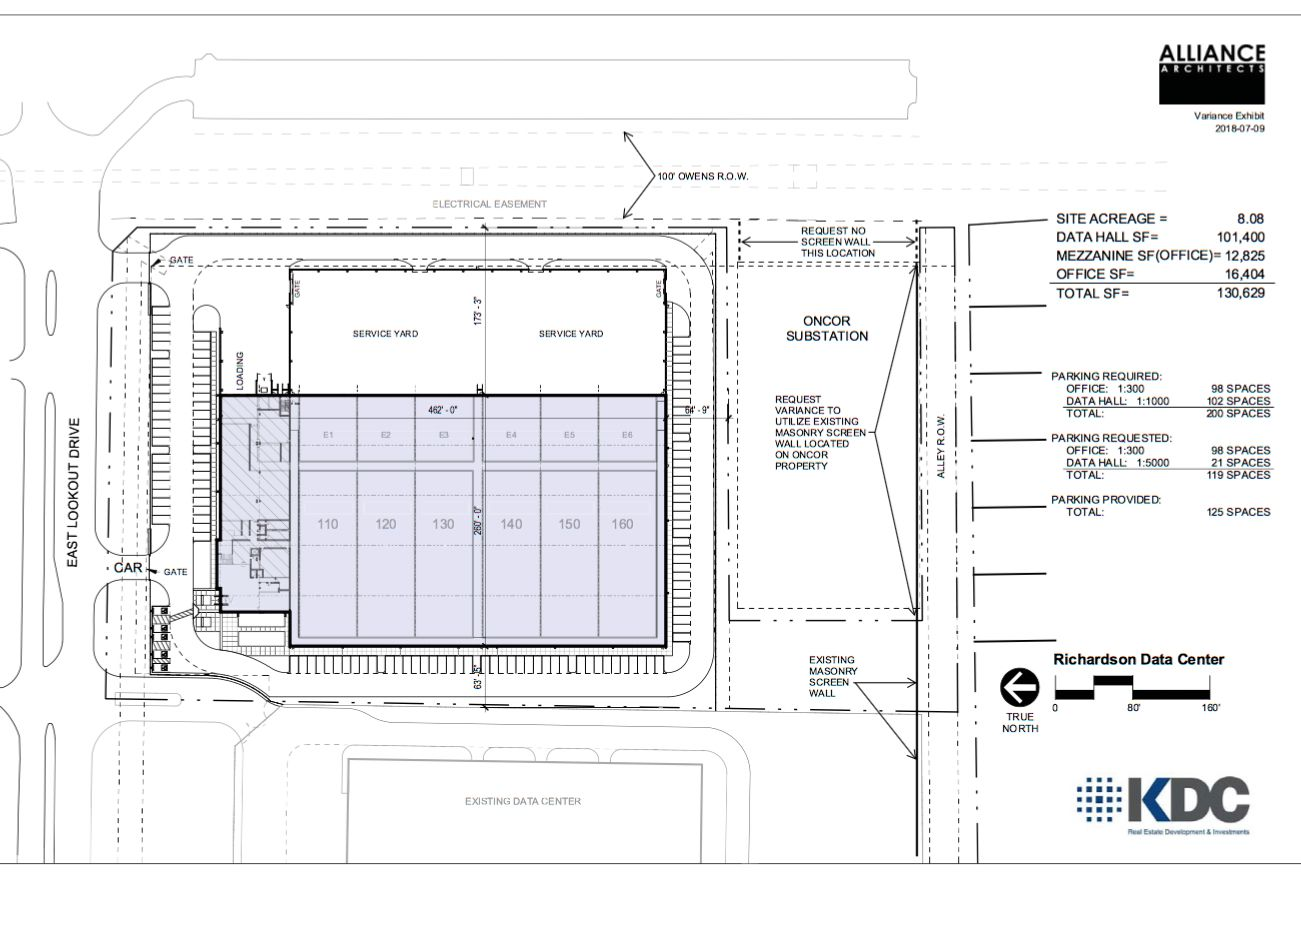 The new data center would be more than 130,000 square feet.